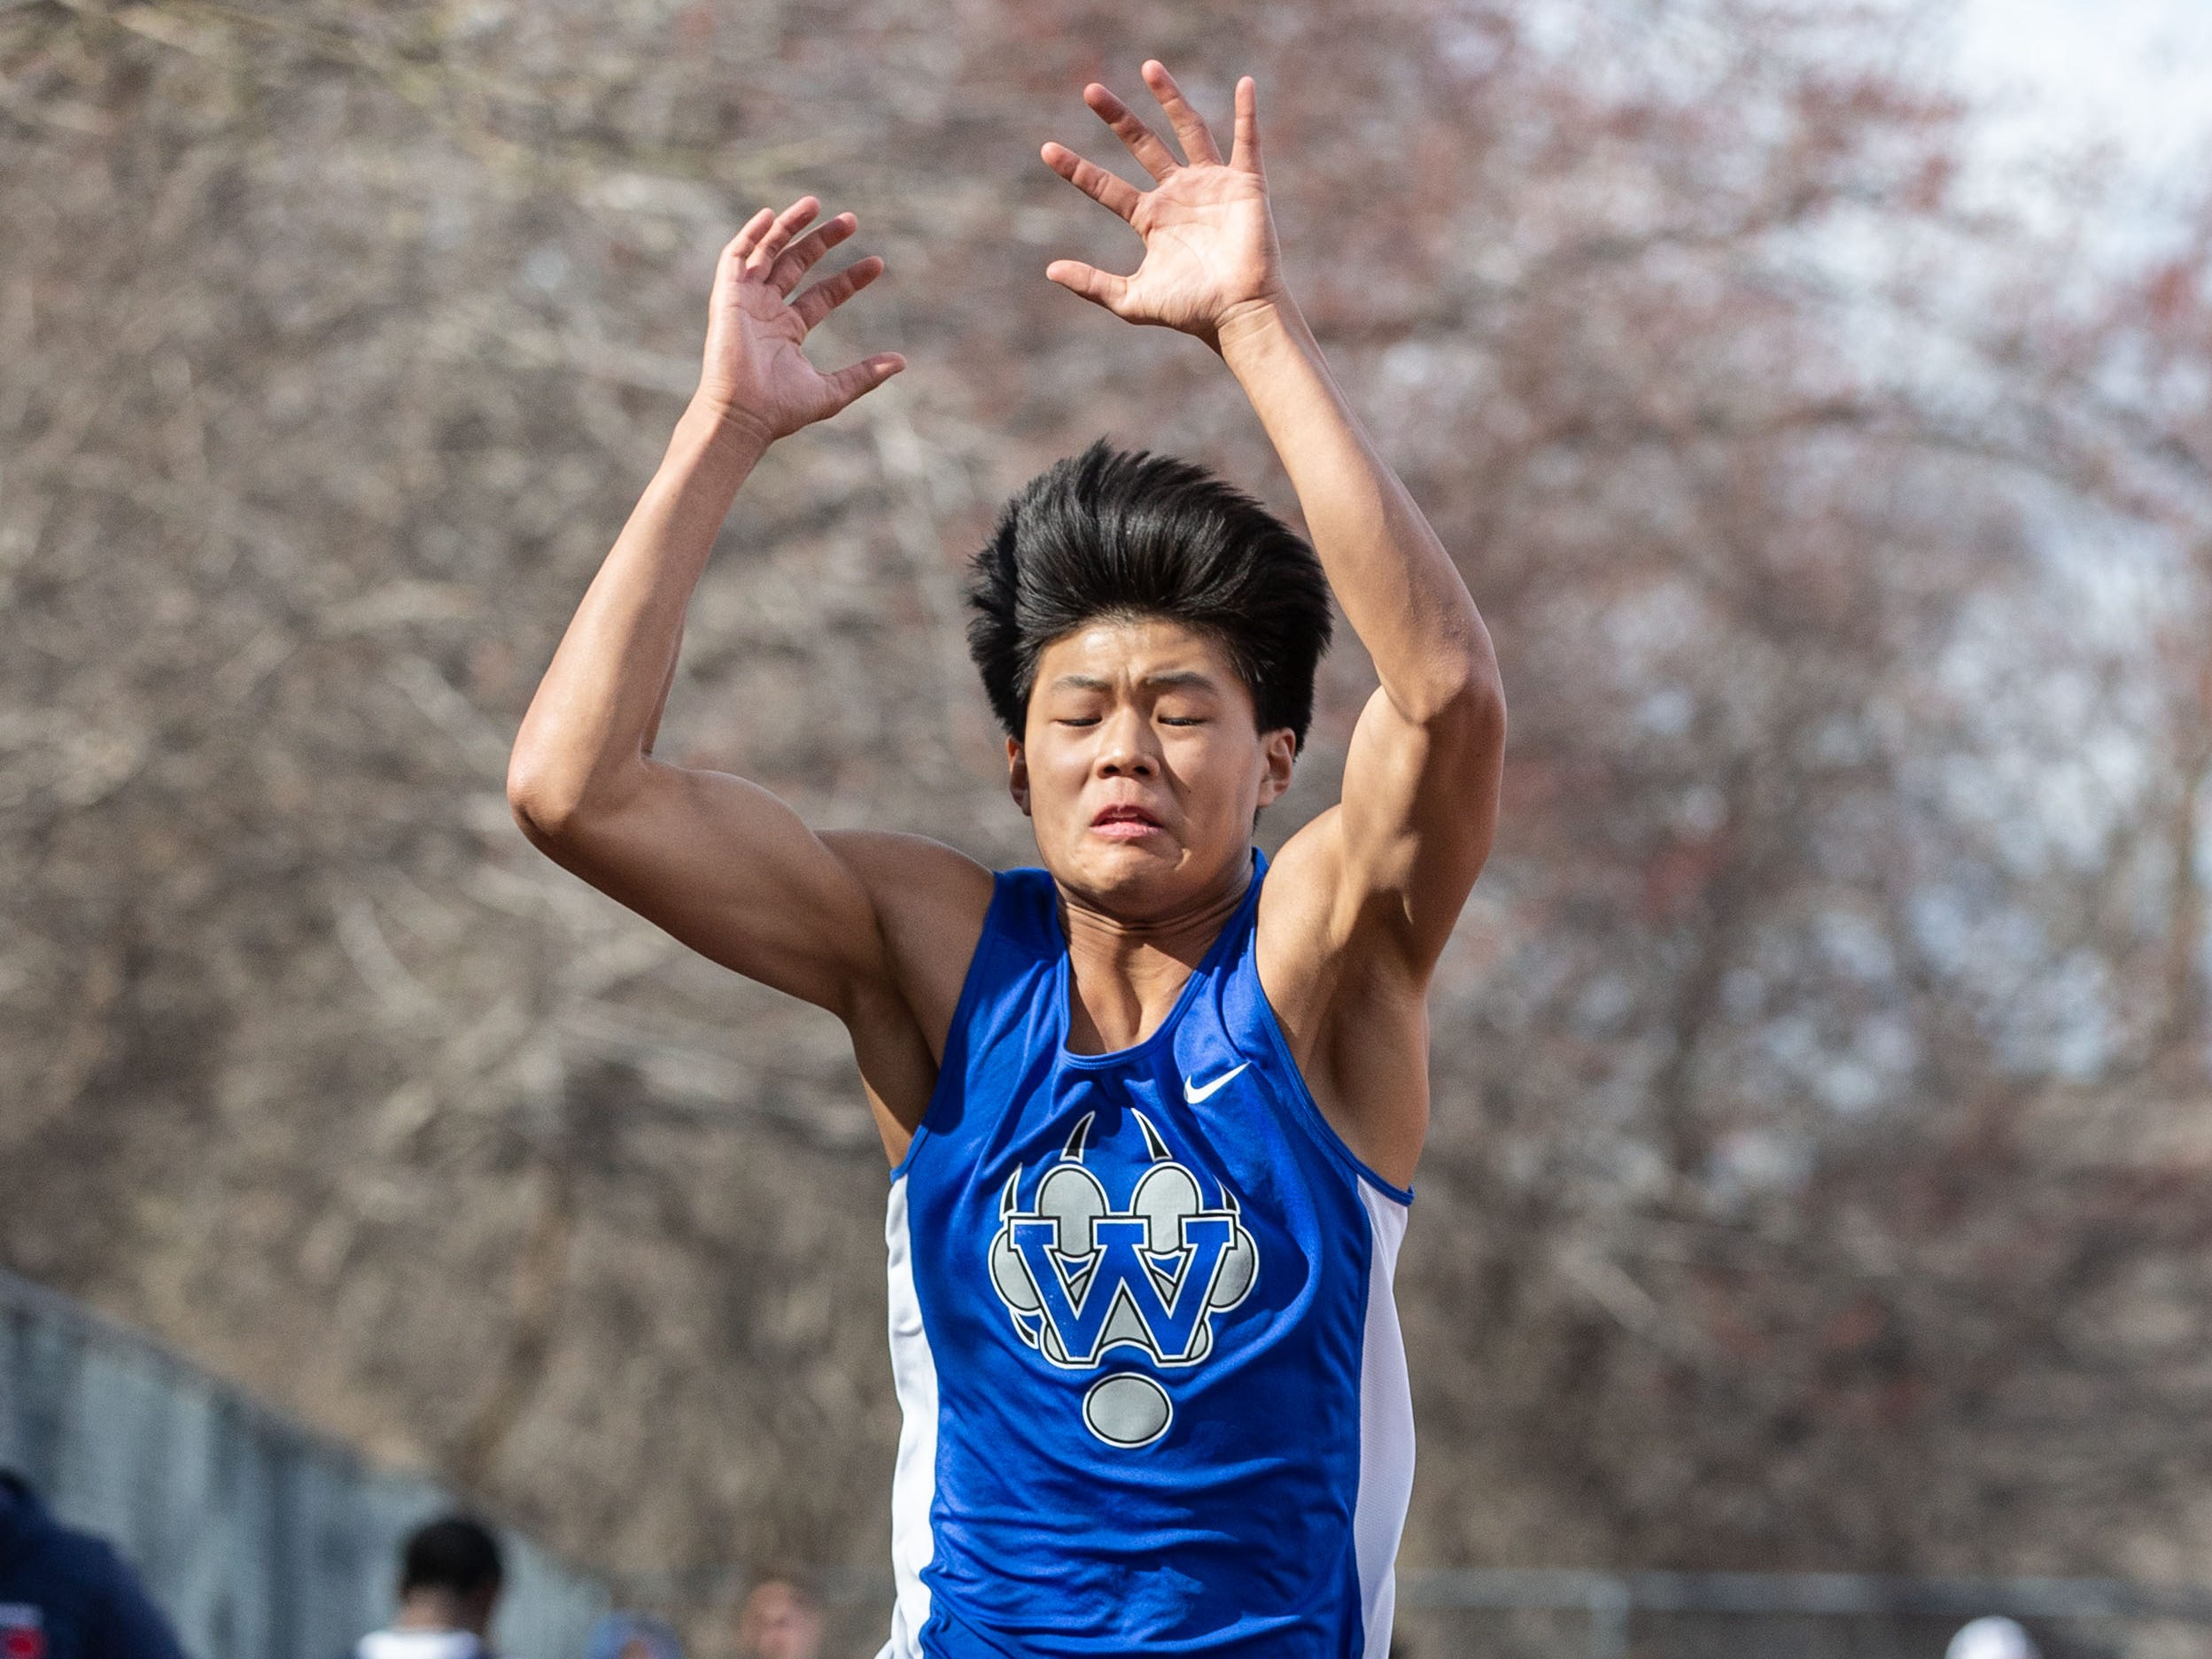 Waukesha West's Kyle Miller competes in the long jump during the Mike Gain 50th Annual Spartan Invitational at Brookfield East on Tuesday, April 9, 2019.